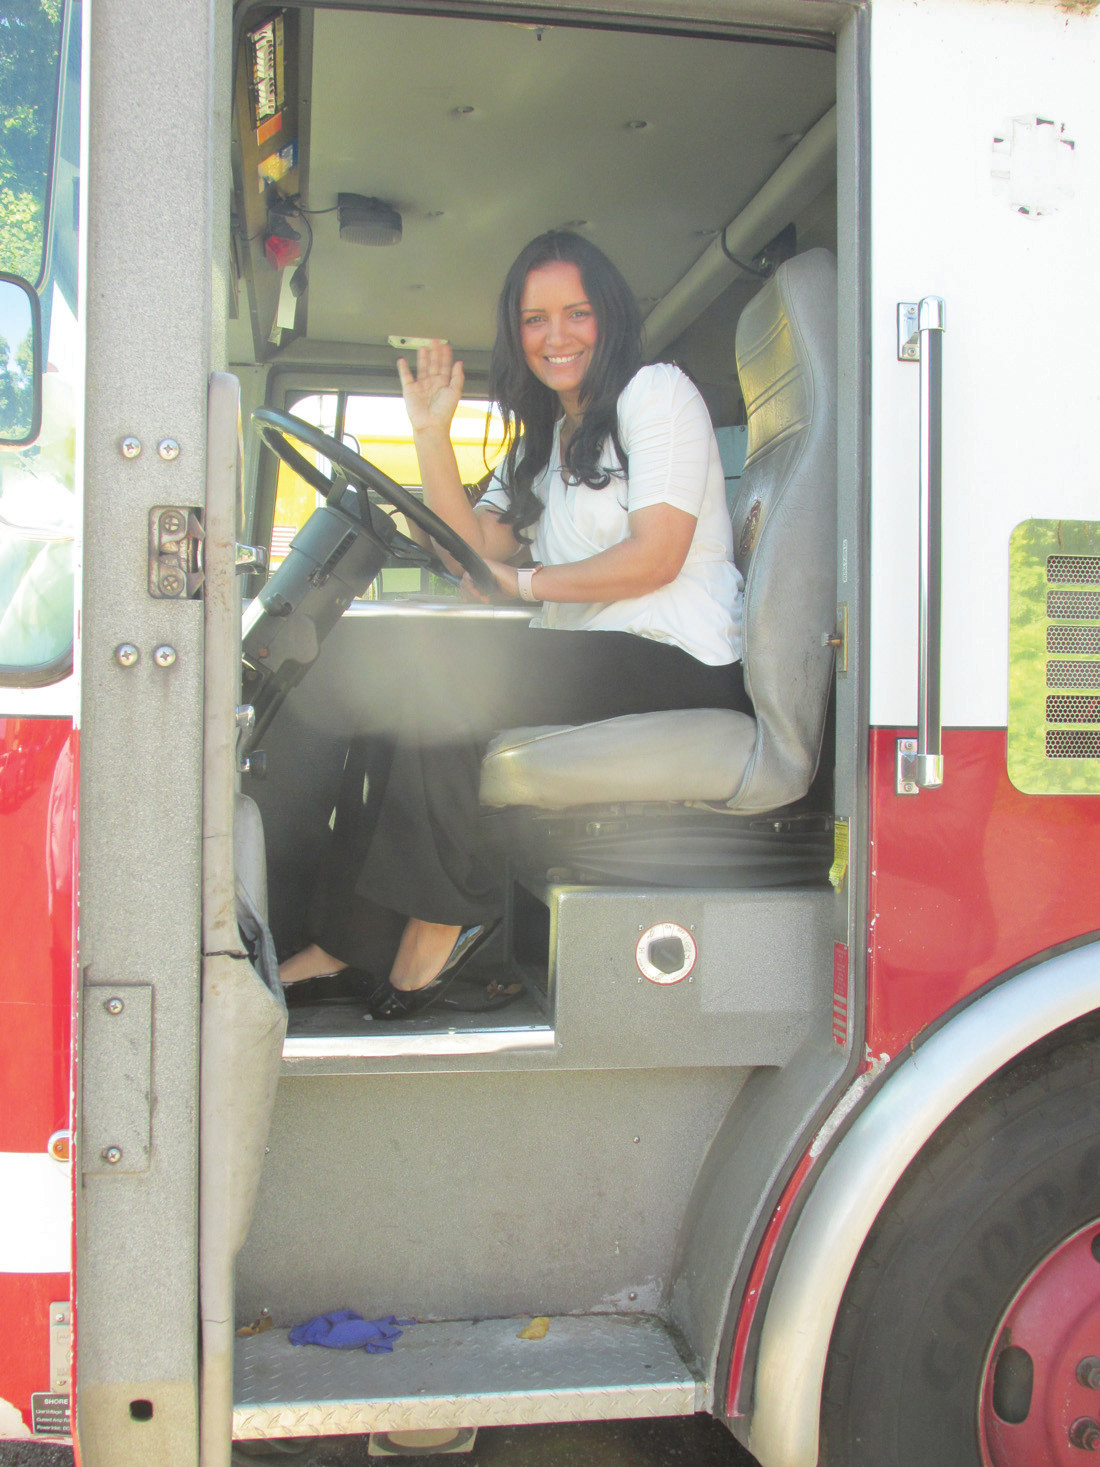 CAROL'S CONNECTION: Community Angels leader Carol Aguasvivas shows her emotions – and smiles – while sitting in this 1999 shiny pumper that helped save lives in Johnston but will soon be dong the same thing in her native village of Bani in the Dominican Republic.